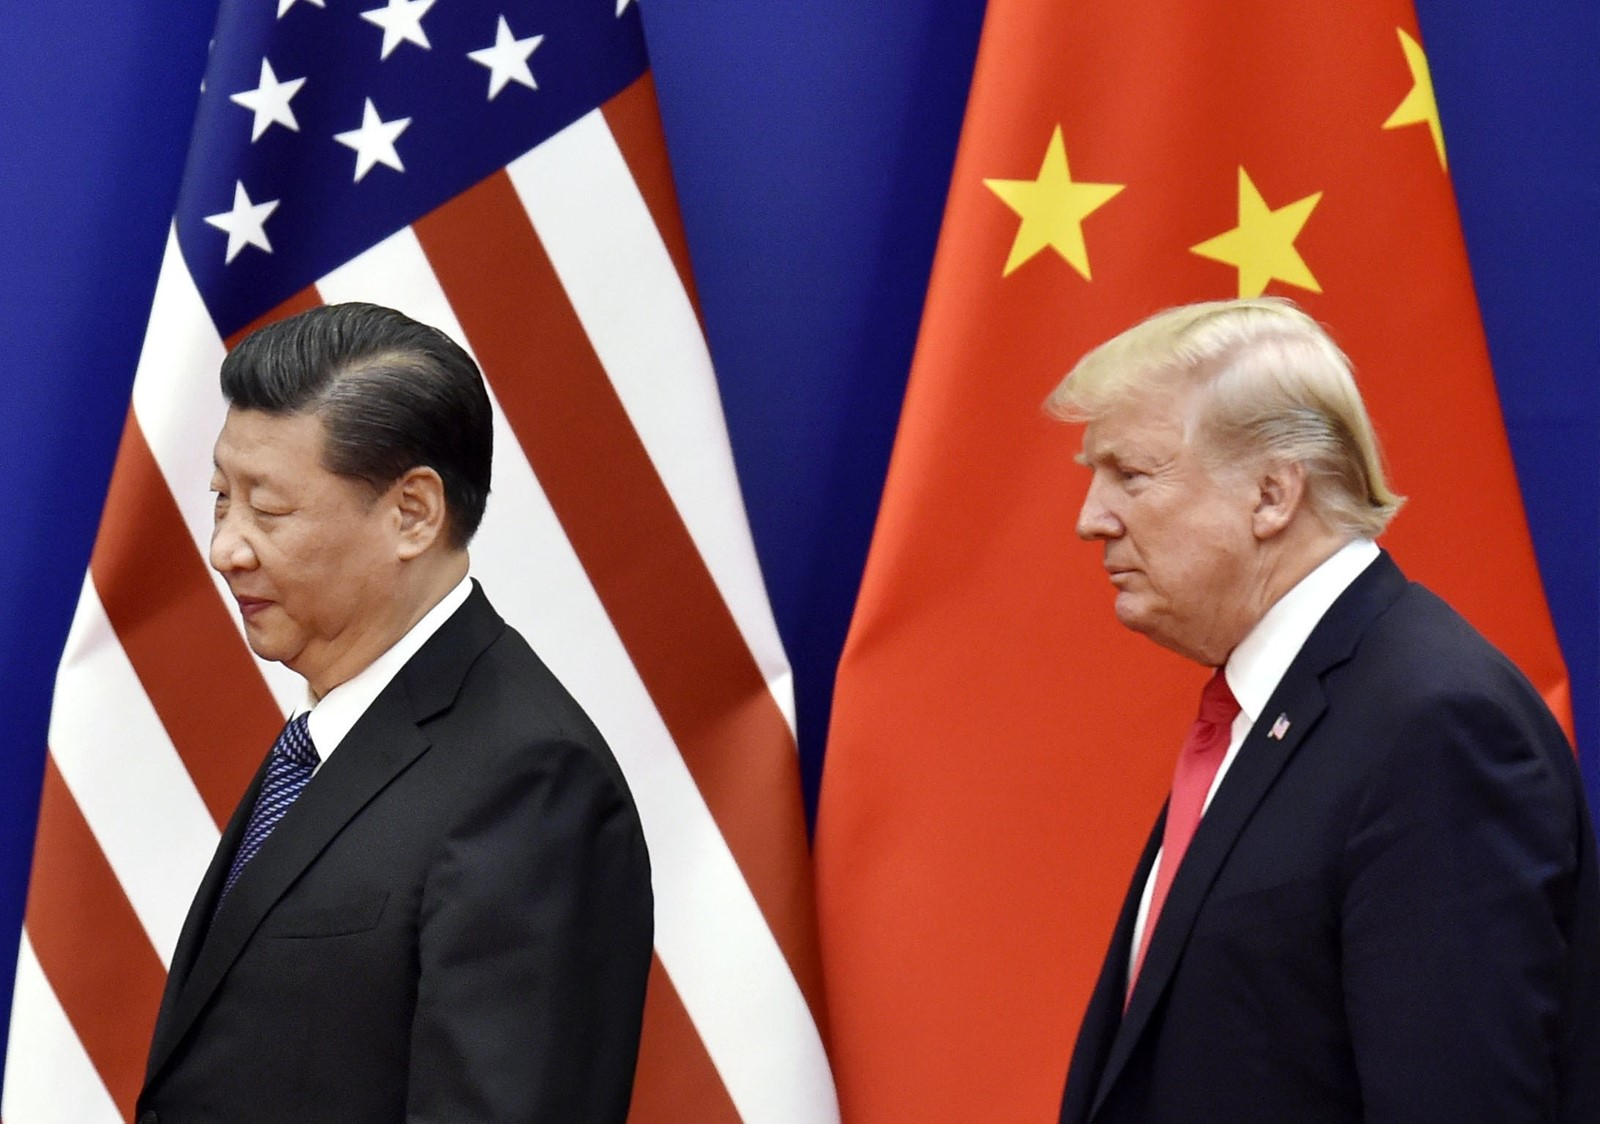 Presidents Xi Jinping and Donald J. Trump at their summit in Beijing last November. The U.S.-China relationship since then has deteriorated quickly and significantly. — Photograph: Kyodo.